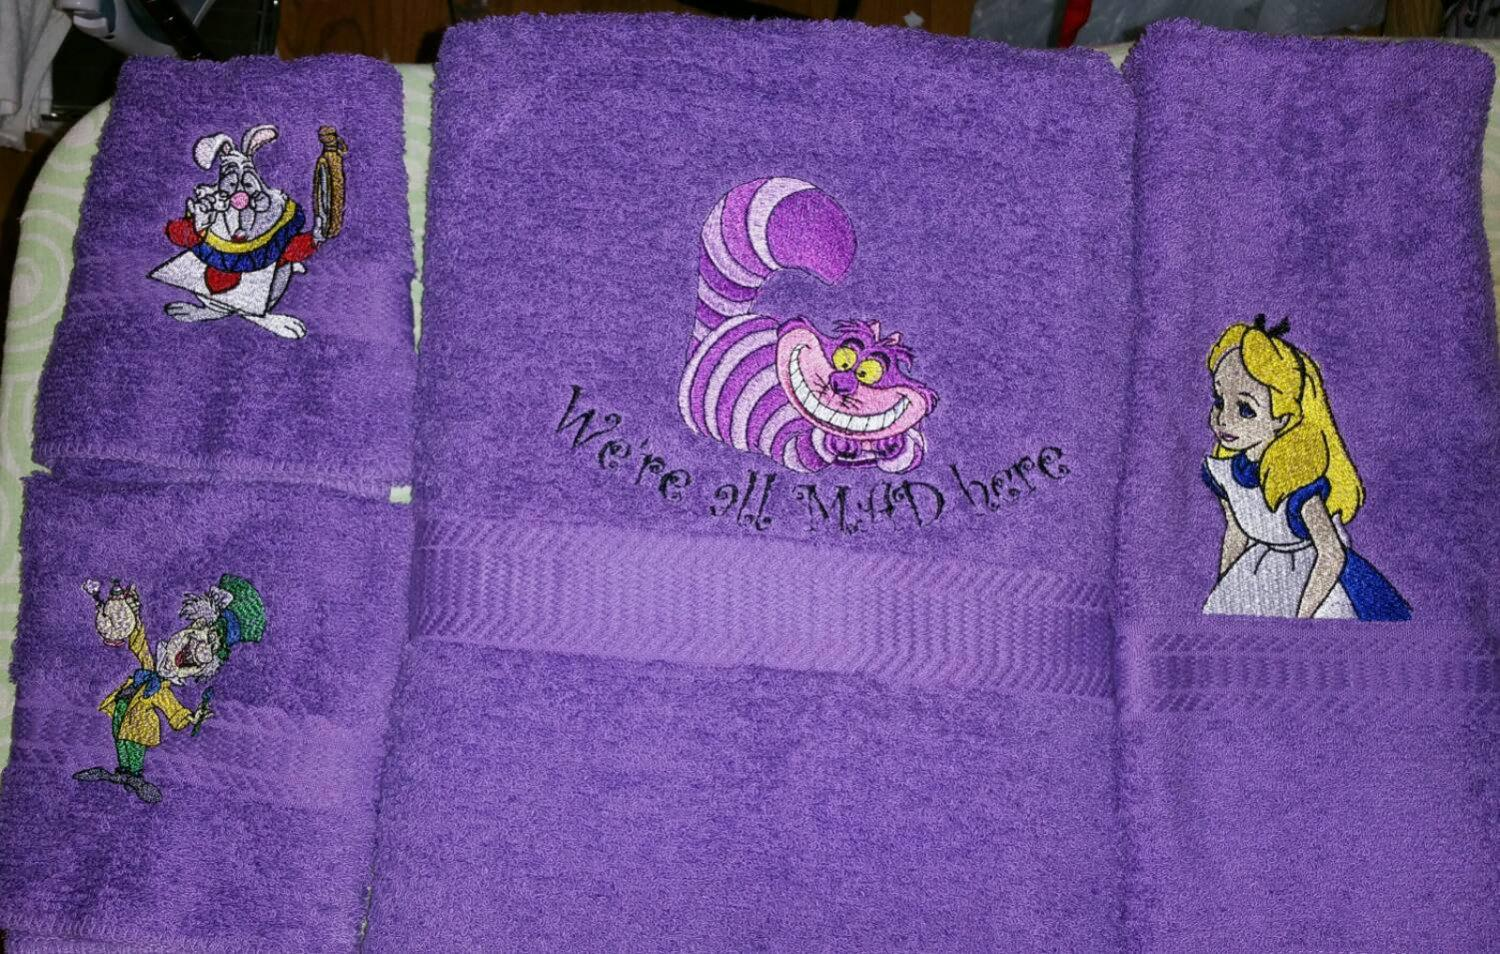 Towels with Alice in Wonderland embroidery designs